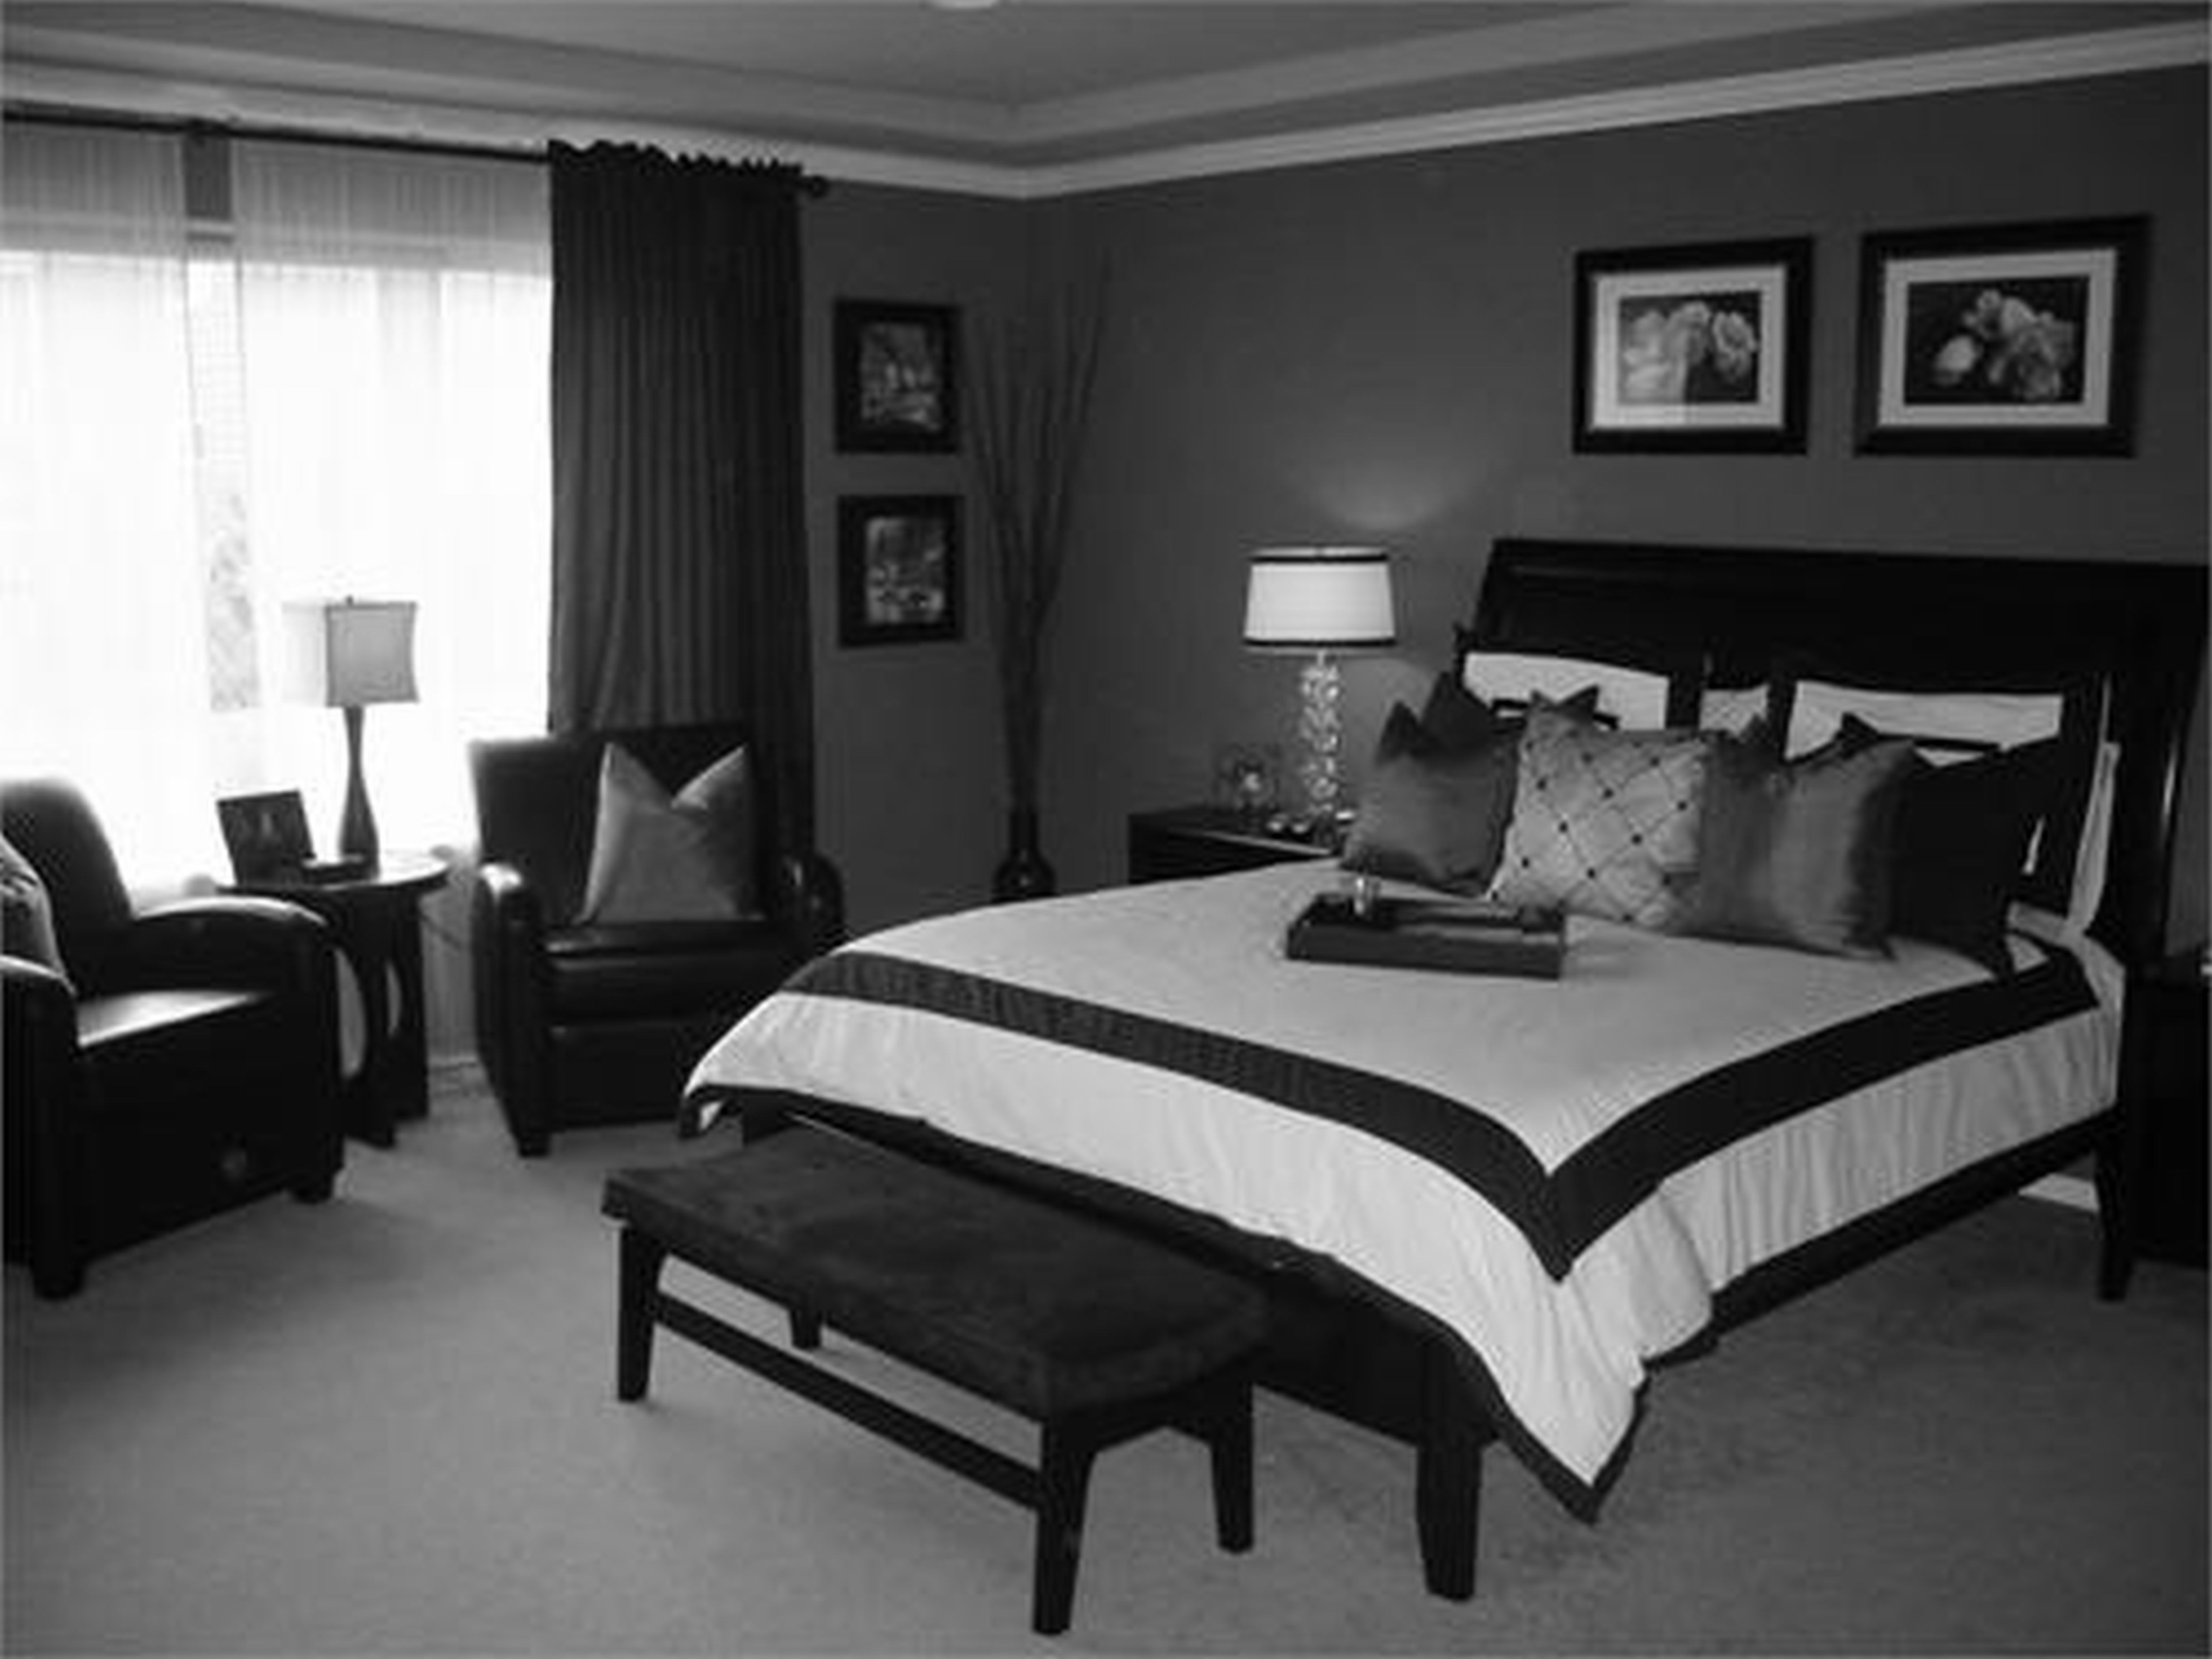 Delicieux Appealing White Black Comforter And Black High Headboard And Benches As  Well As Pictures Bedroom Wall